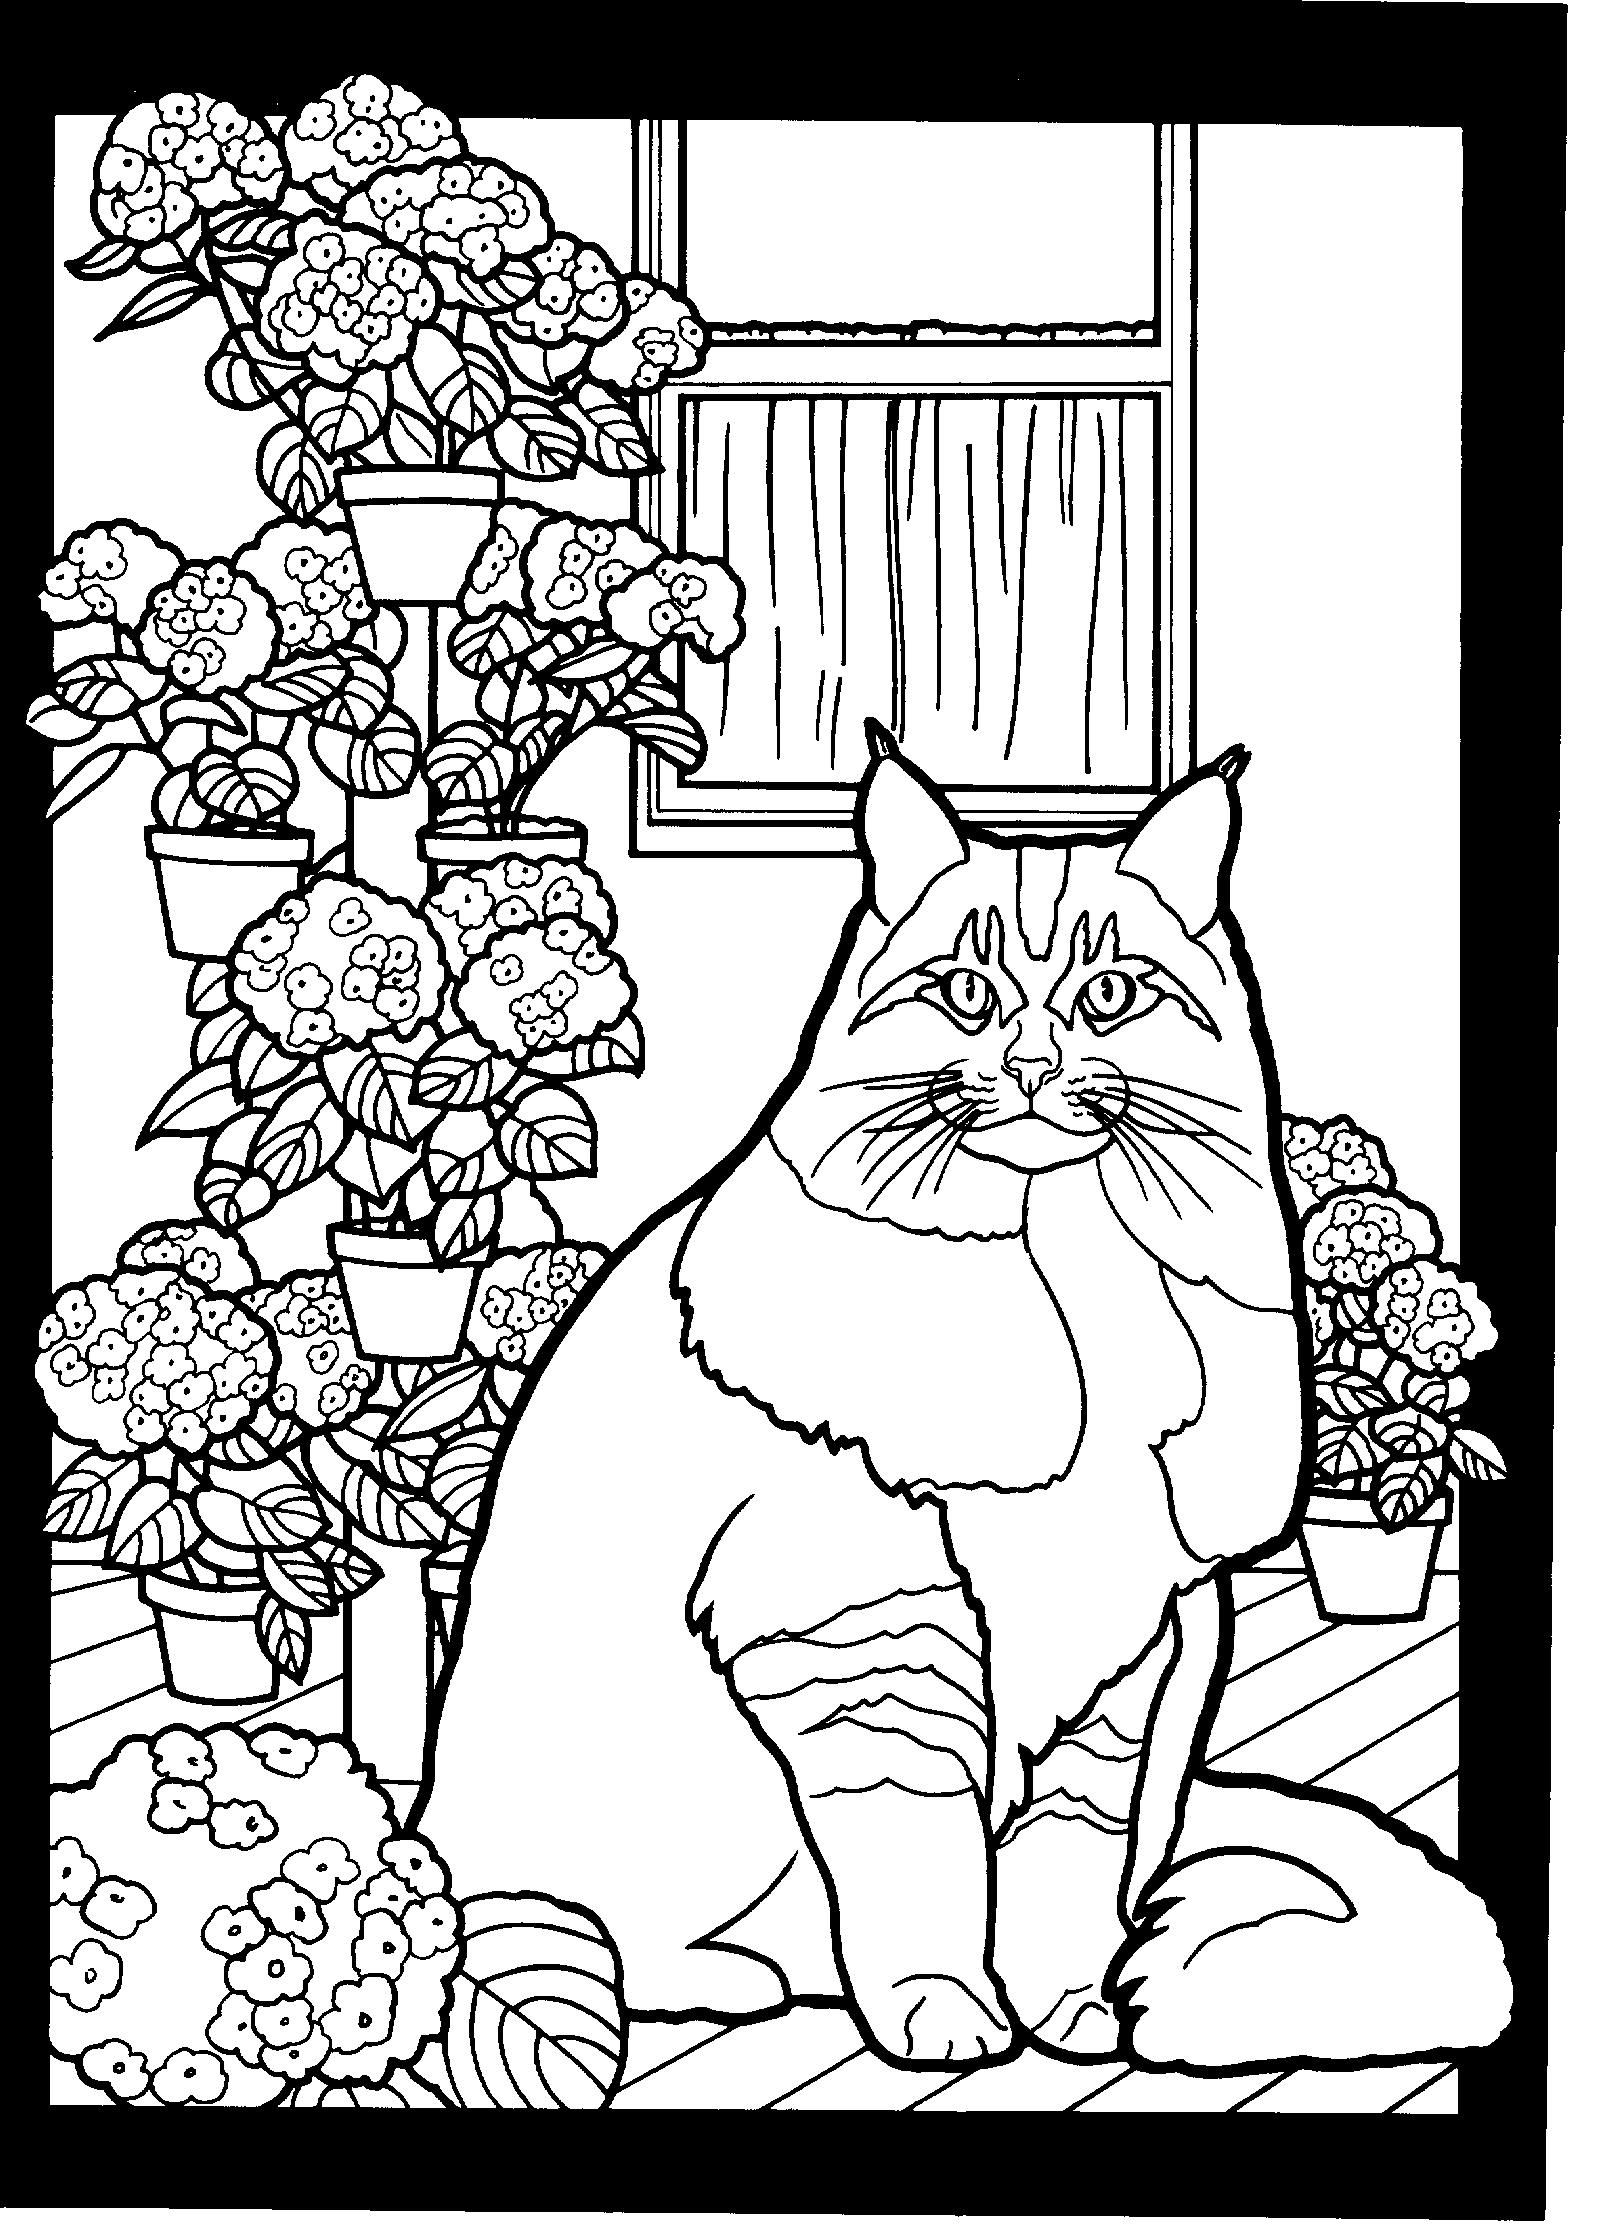 Pin on Just cats coloring 2